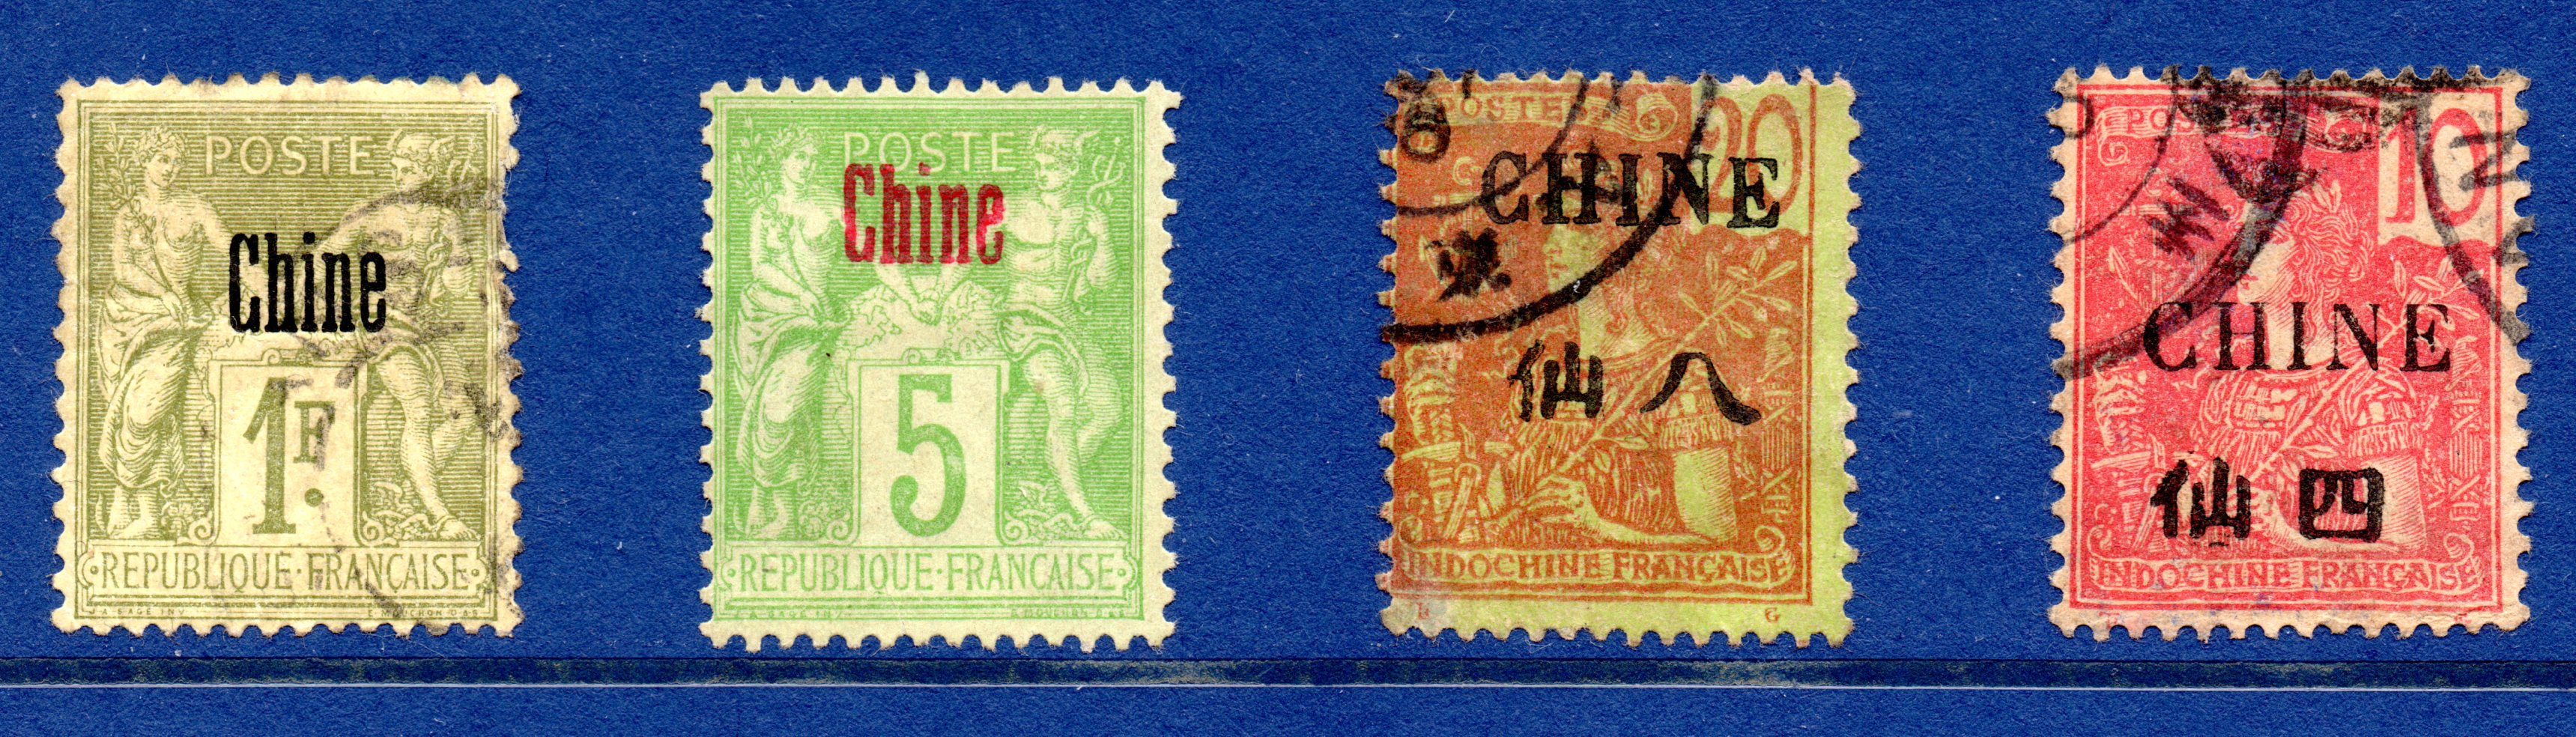 China Early Mint & Used Overprints (4) - SOLD